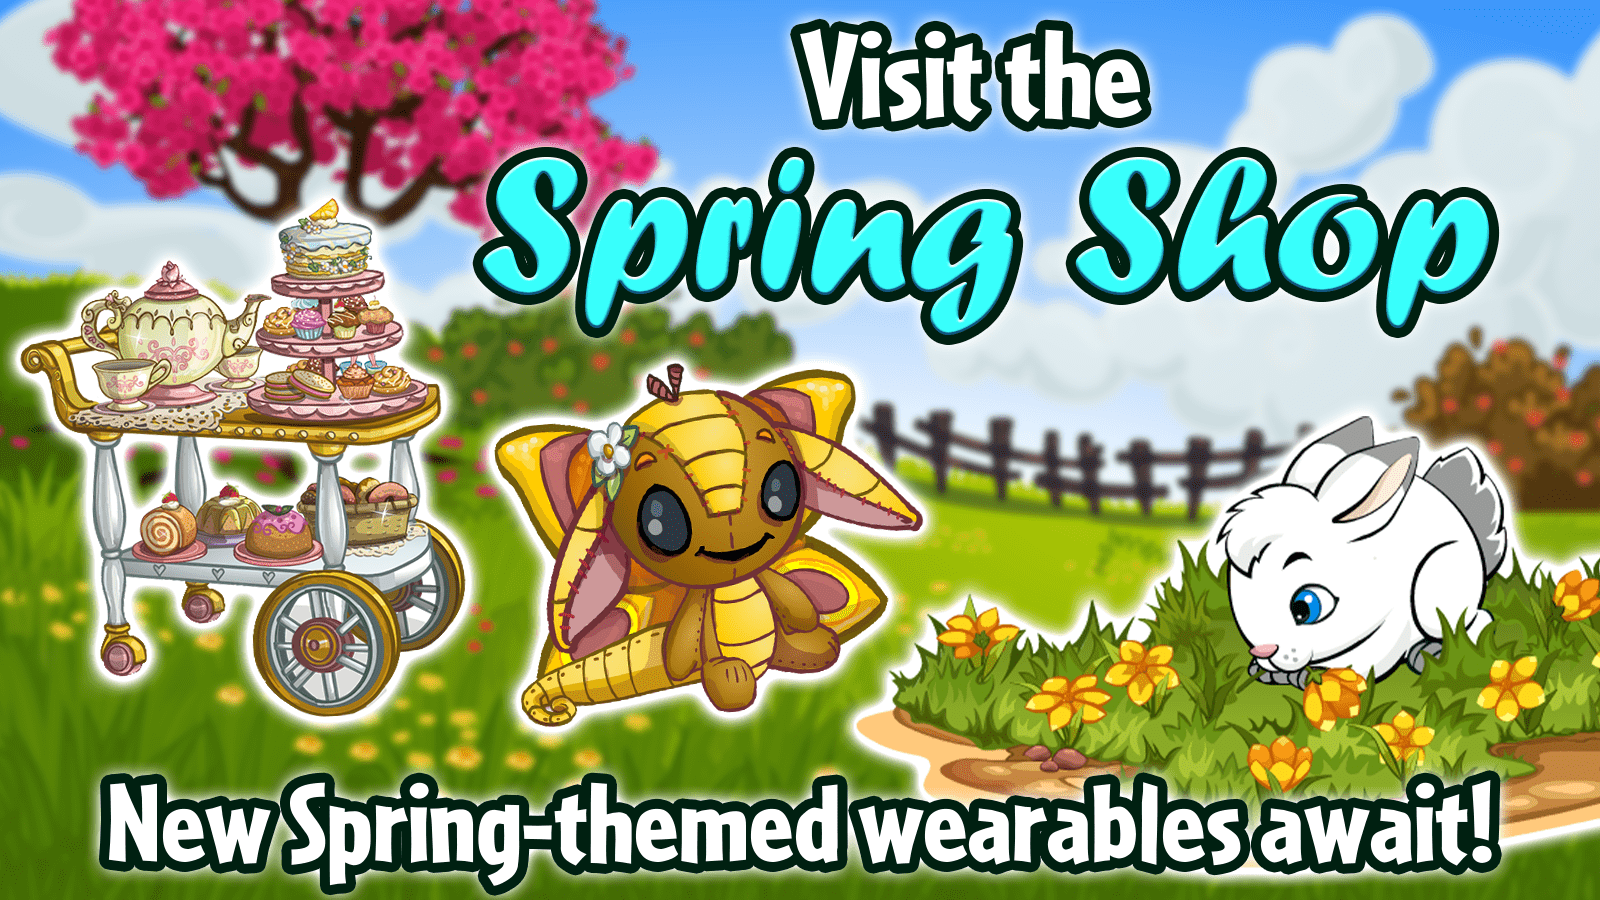 https://images.neopets.com/homepage/notice/banner/spring_shop_lofnf.png